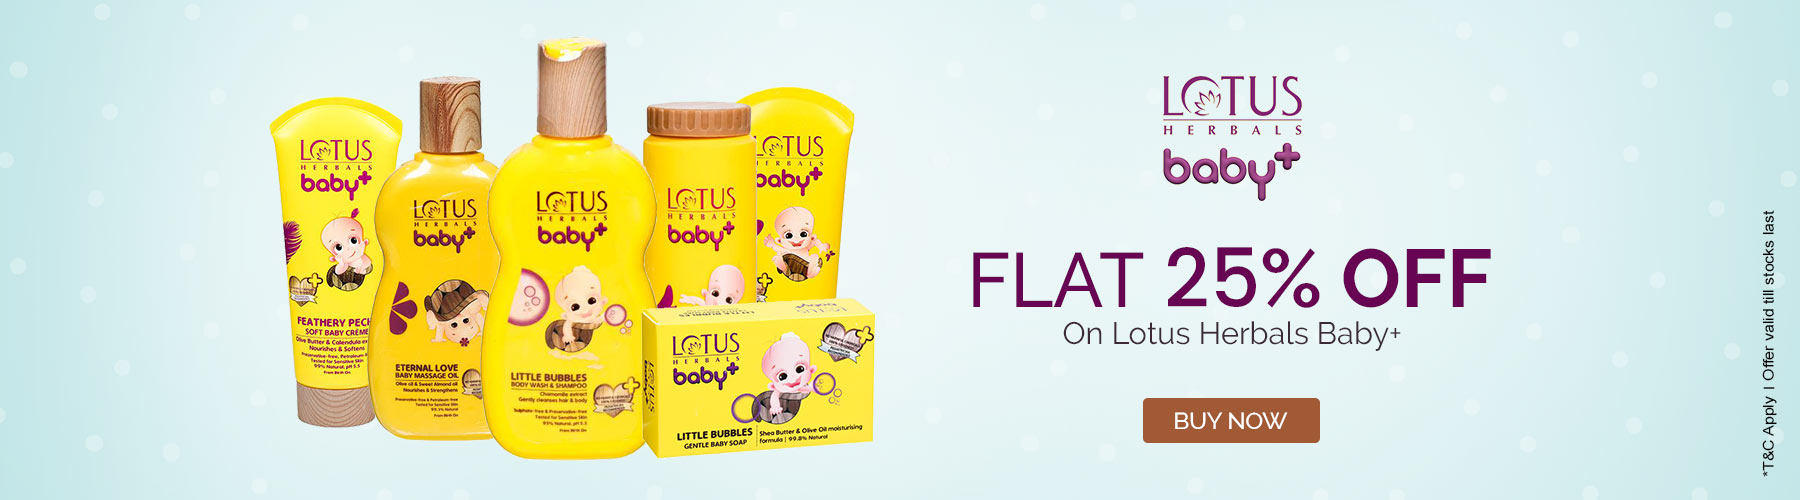 lotus baby products